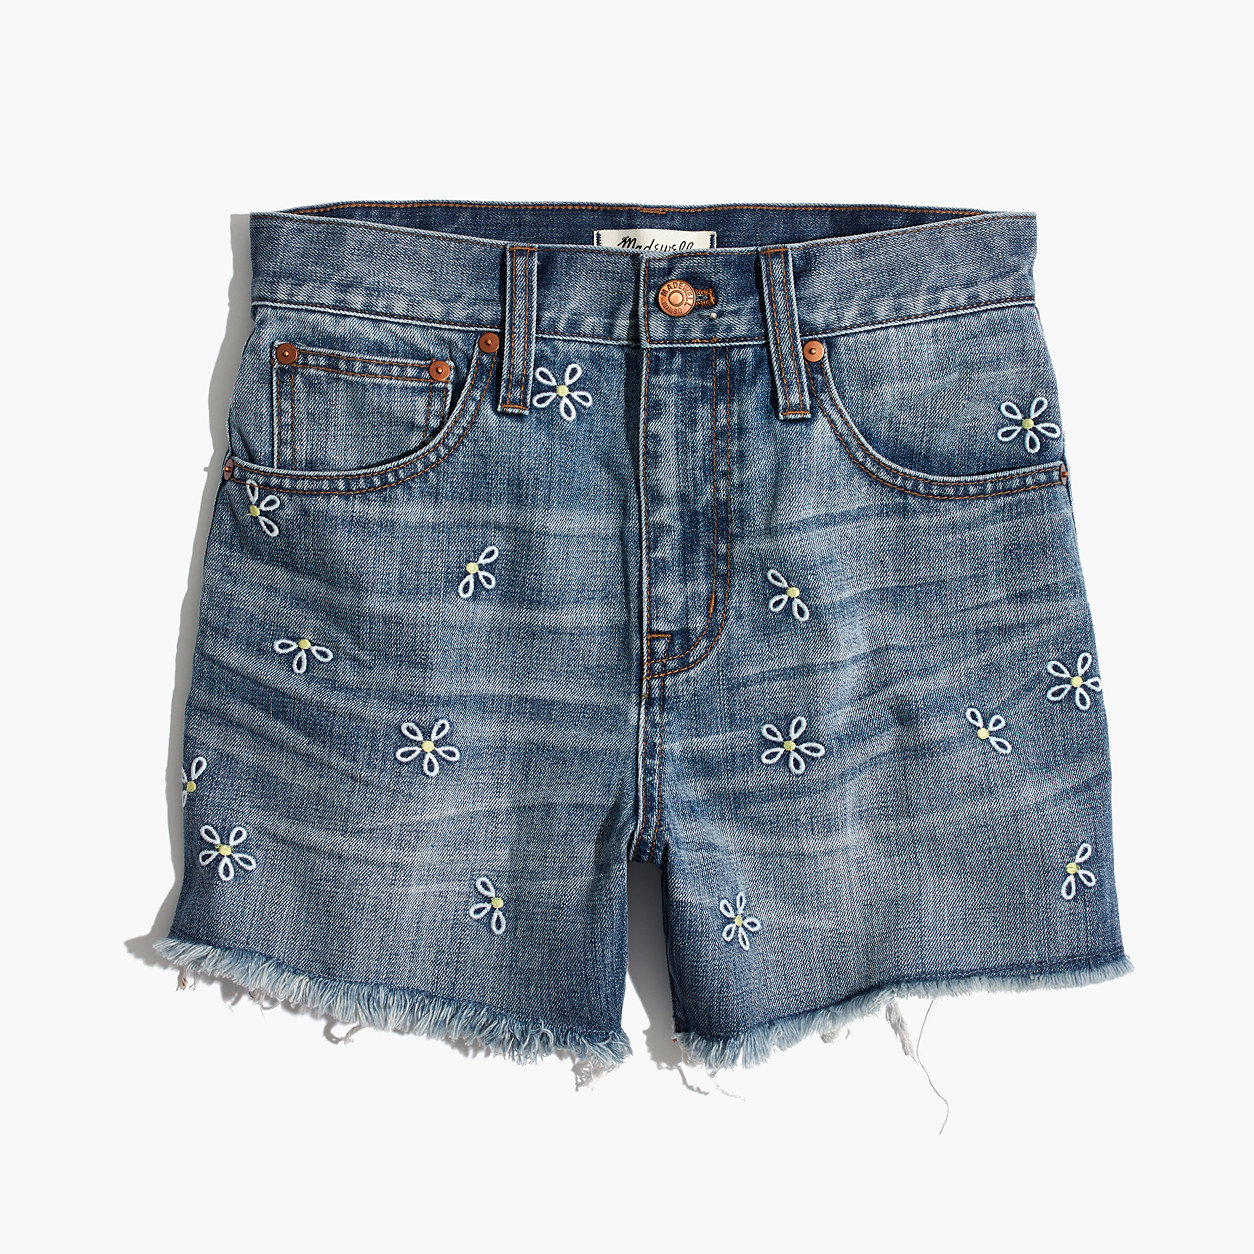 170f46b1b8a8 Madewell The Perfect Jean Short: Daisy Embroidered Edition ...